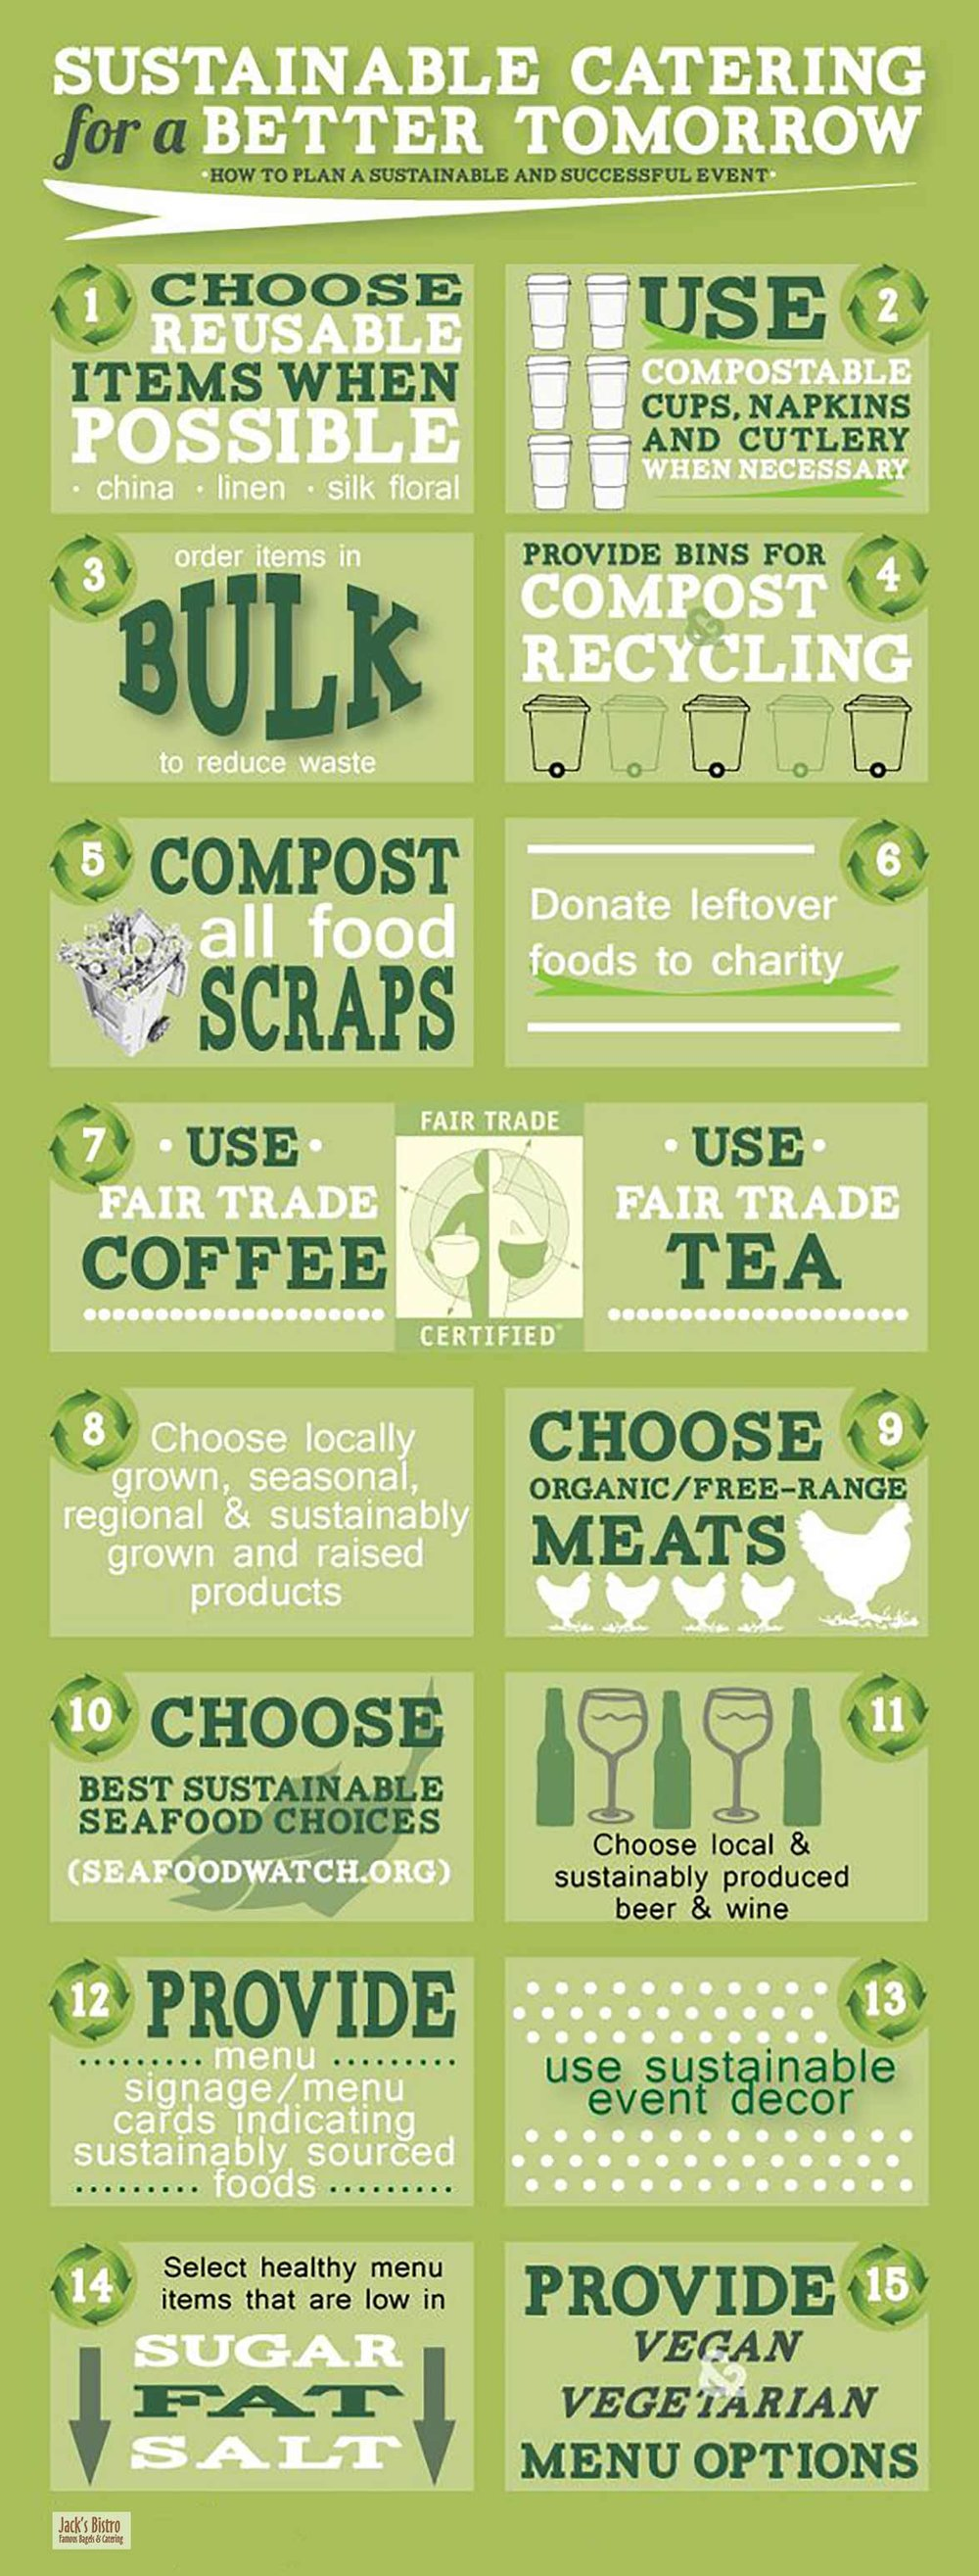 Sustainable Catering Infographic